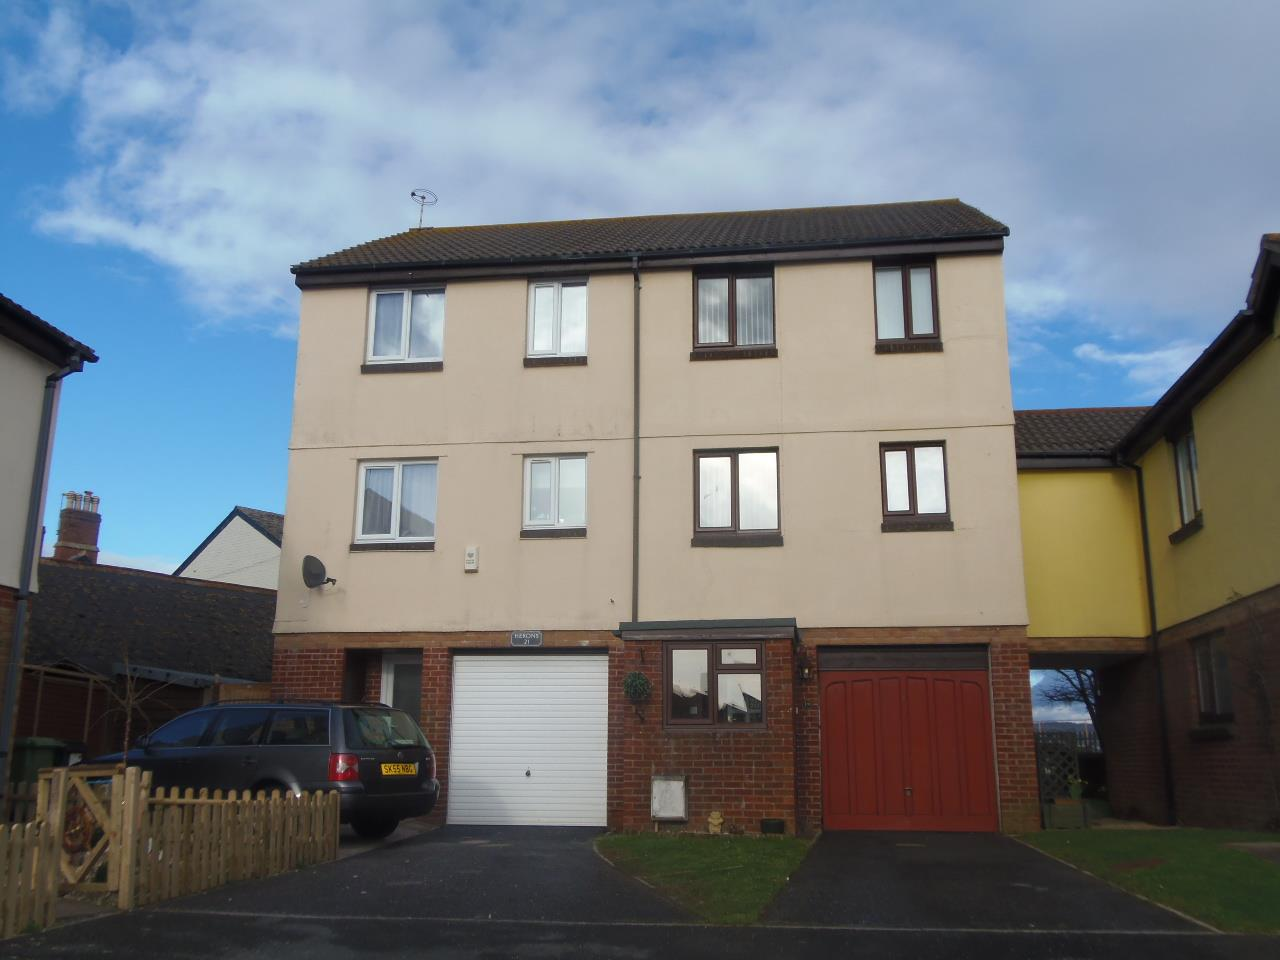 4 Bedrooms Town House for sale in Royal Way, Starcross, Exeter